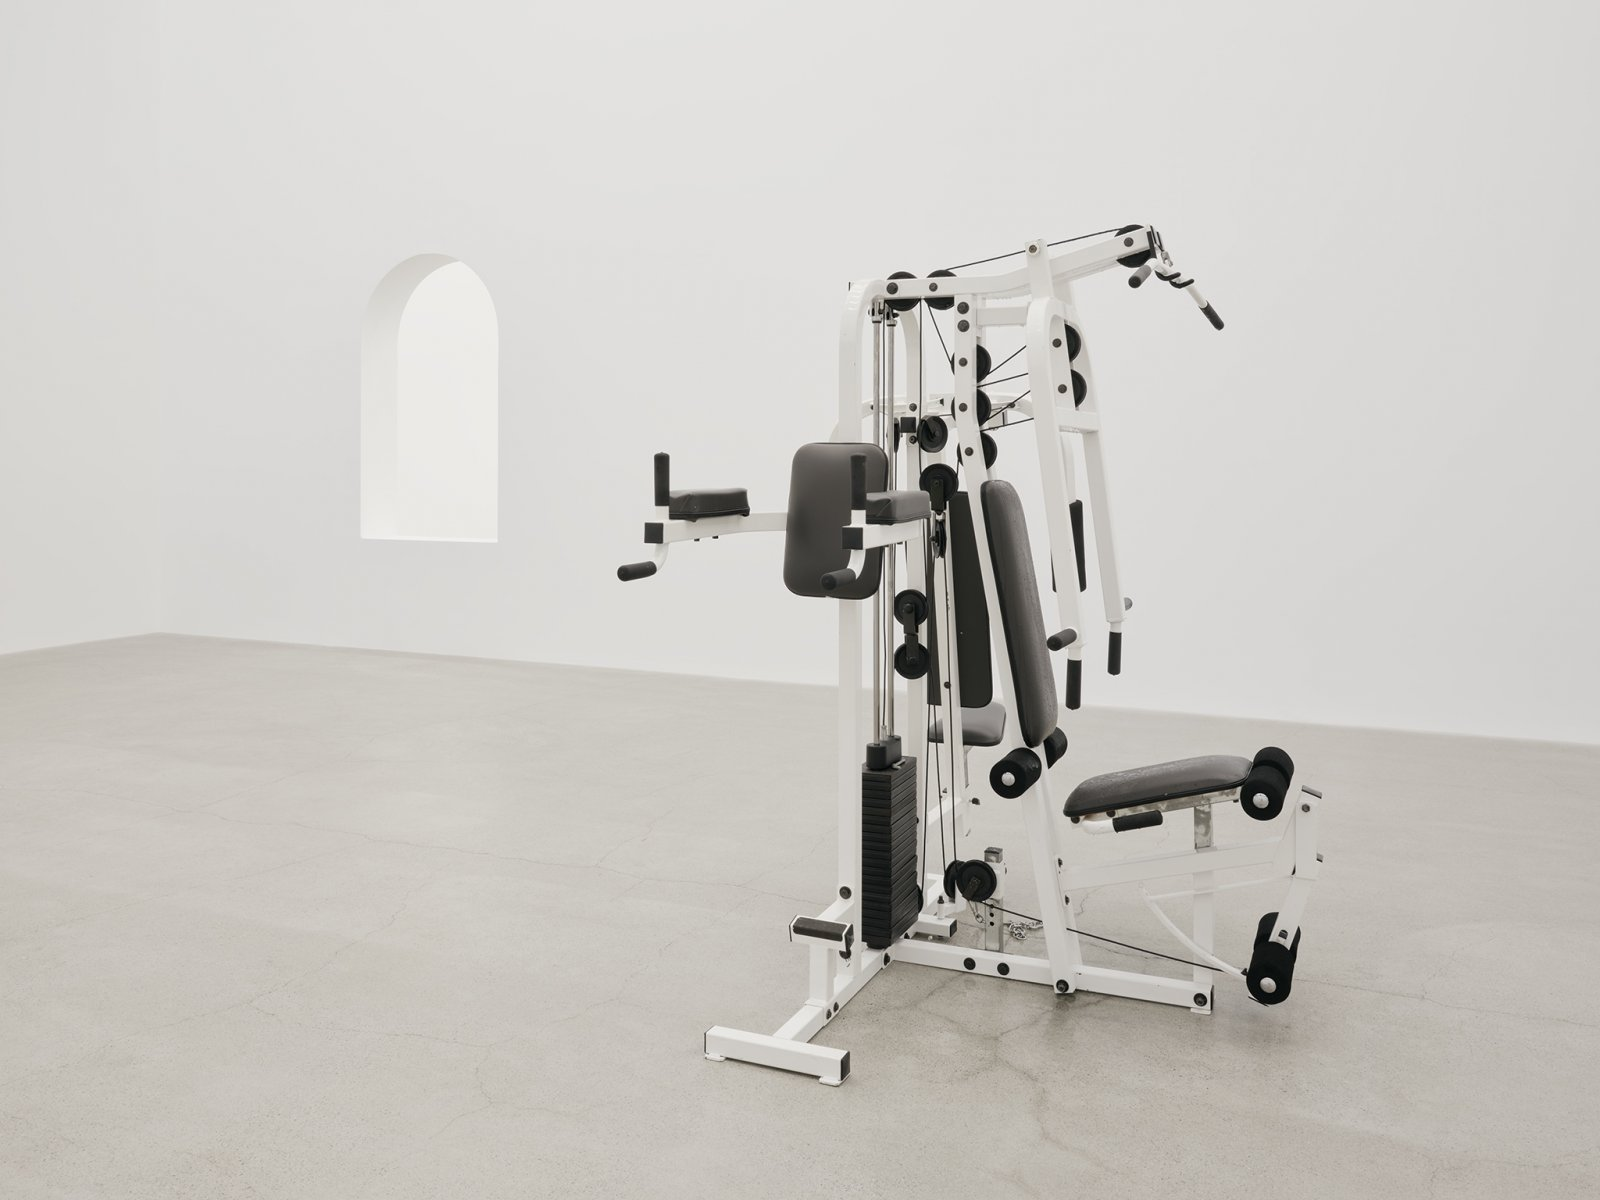 Abbas Akhavan, not titled, 2019, gym equipment, misting system, automatic water timer, water, installation dimensions variable by Abbas Akhavan